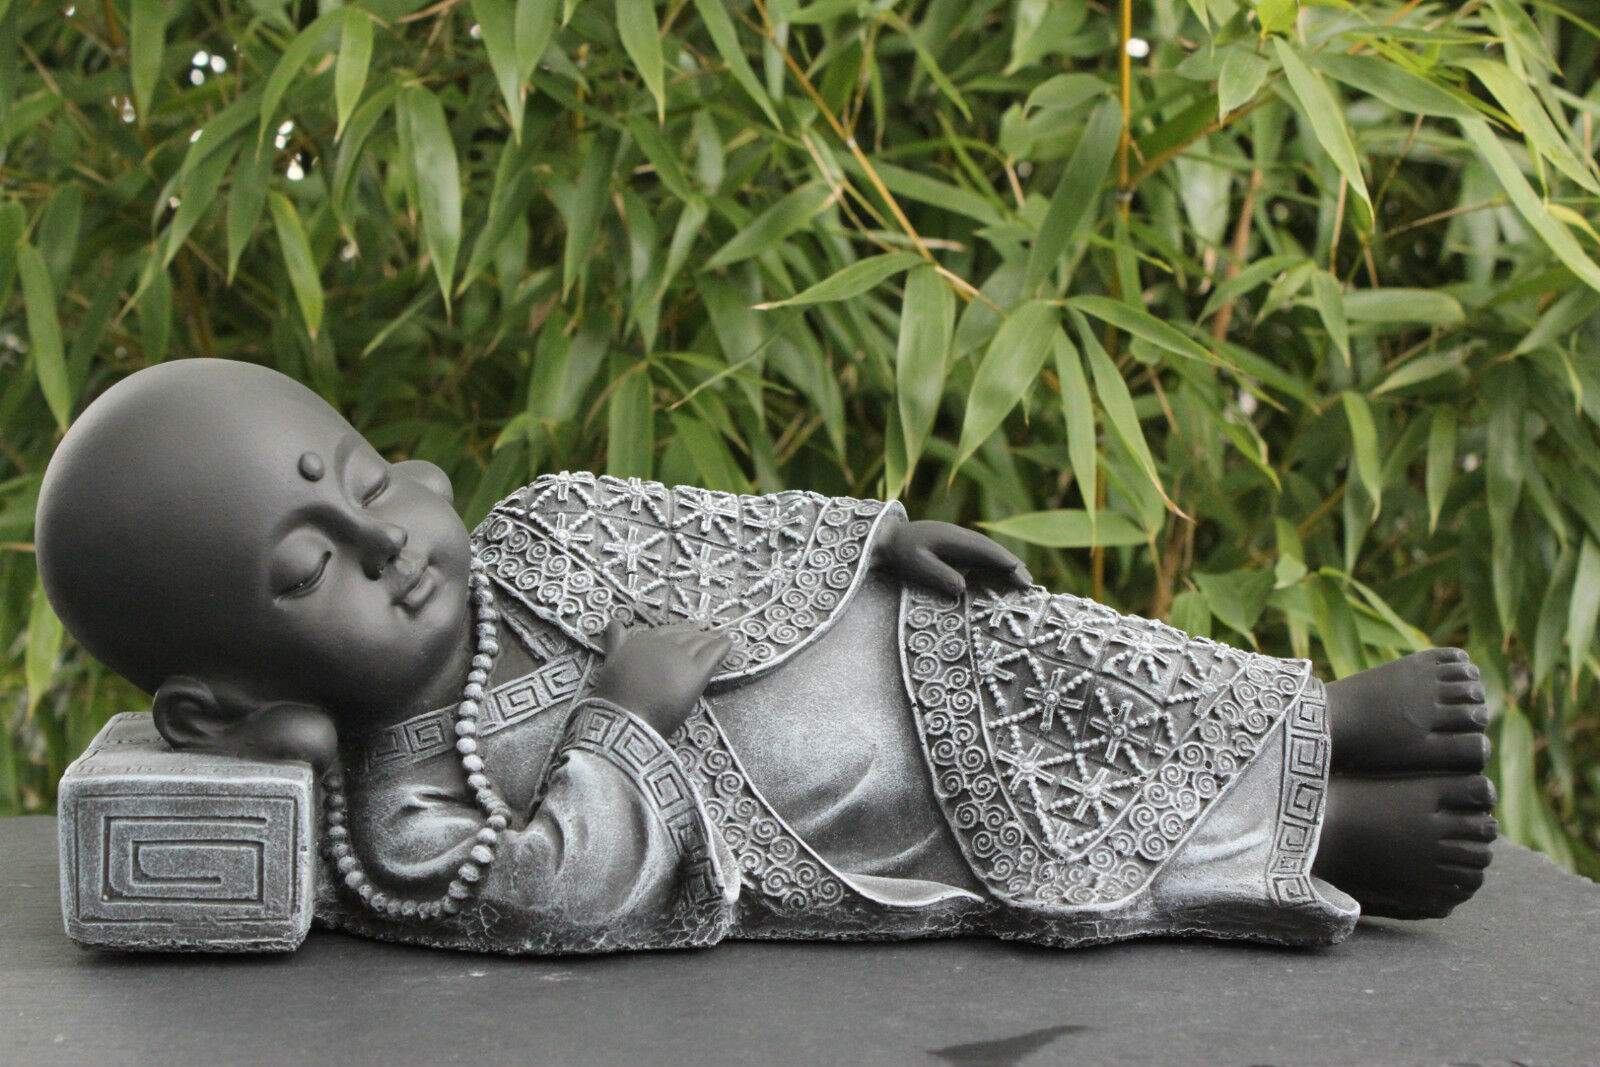 buddha liegend figur deko garten stein figur statue skulptur garten figur eur 35 90 picclick de. Black Bedroom Furniture Sets. Home Design Ideas